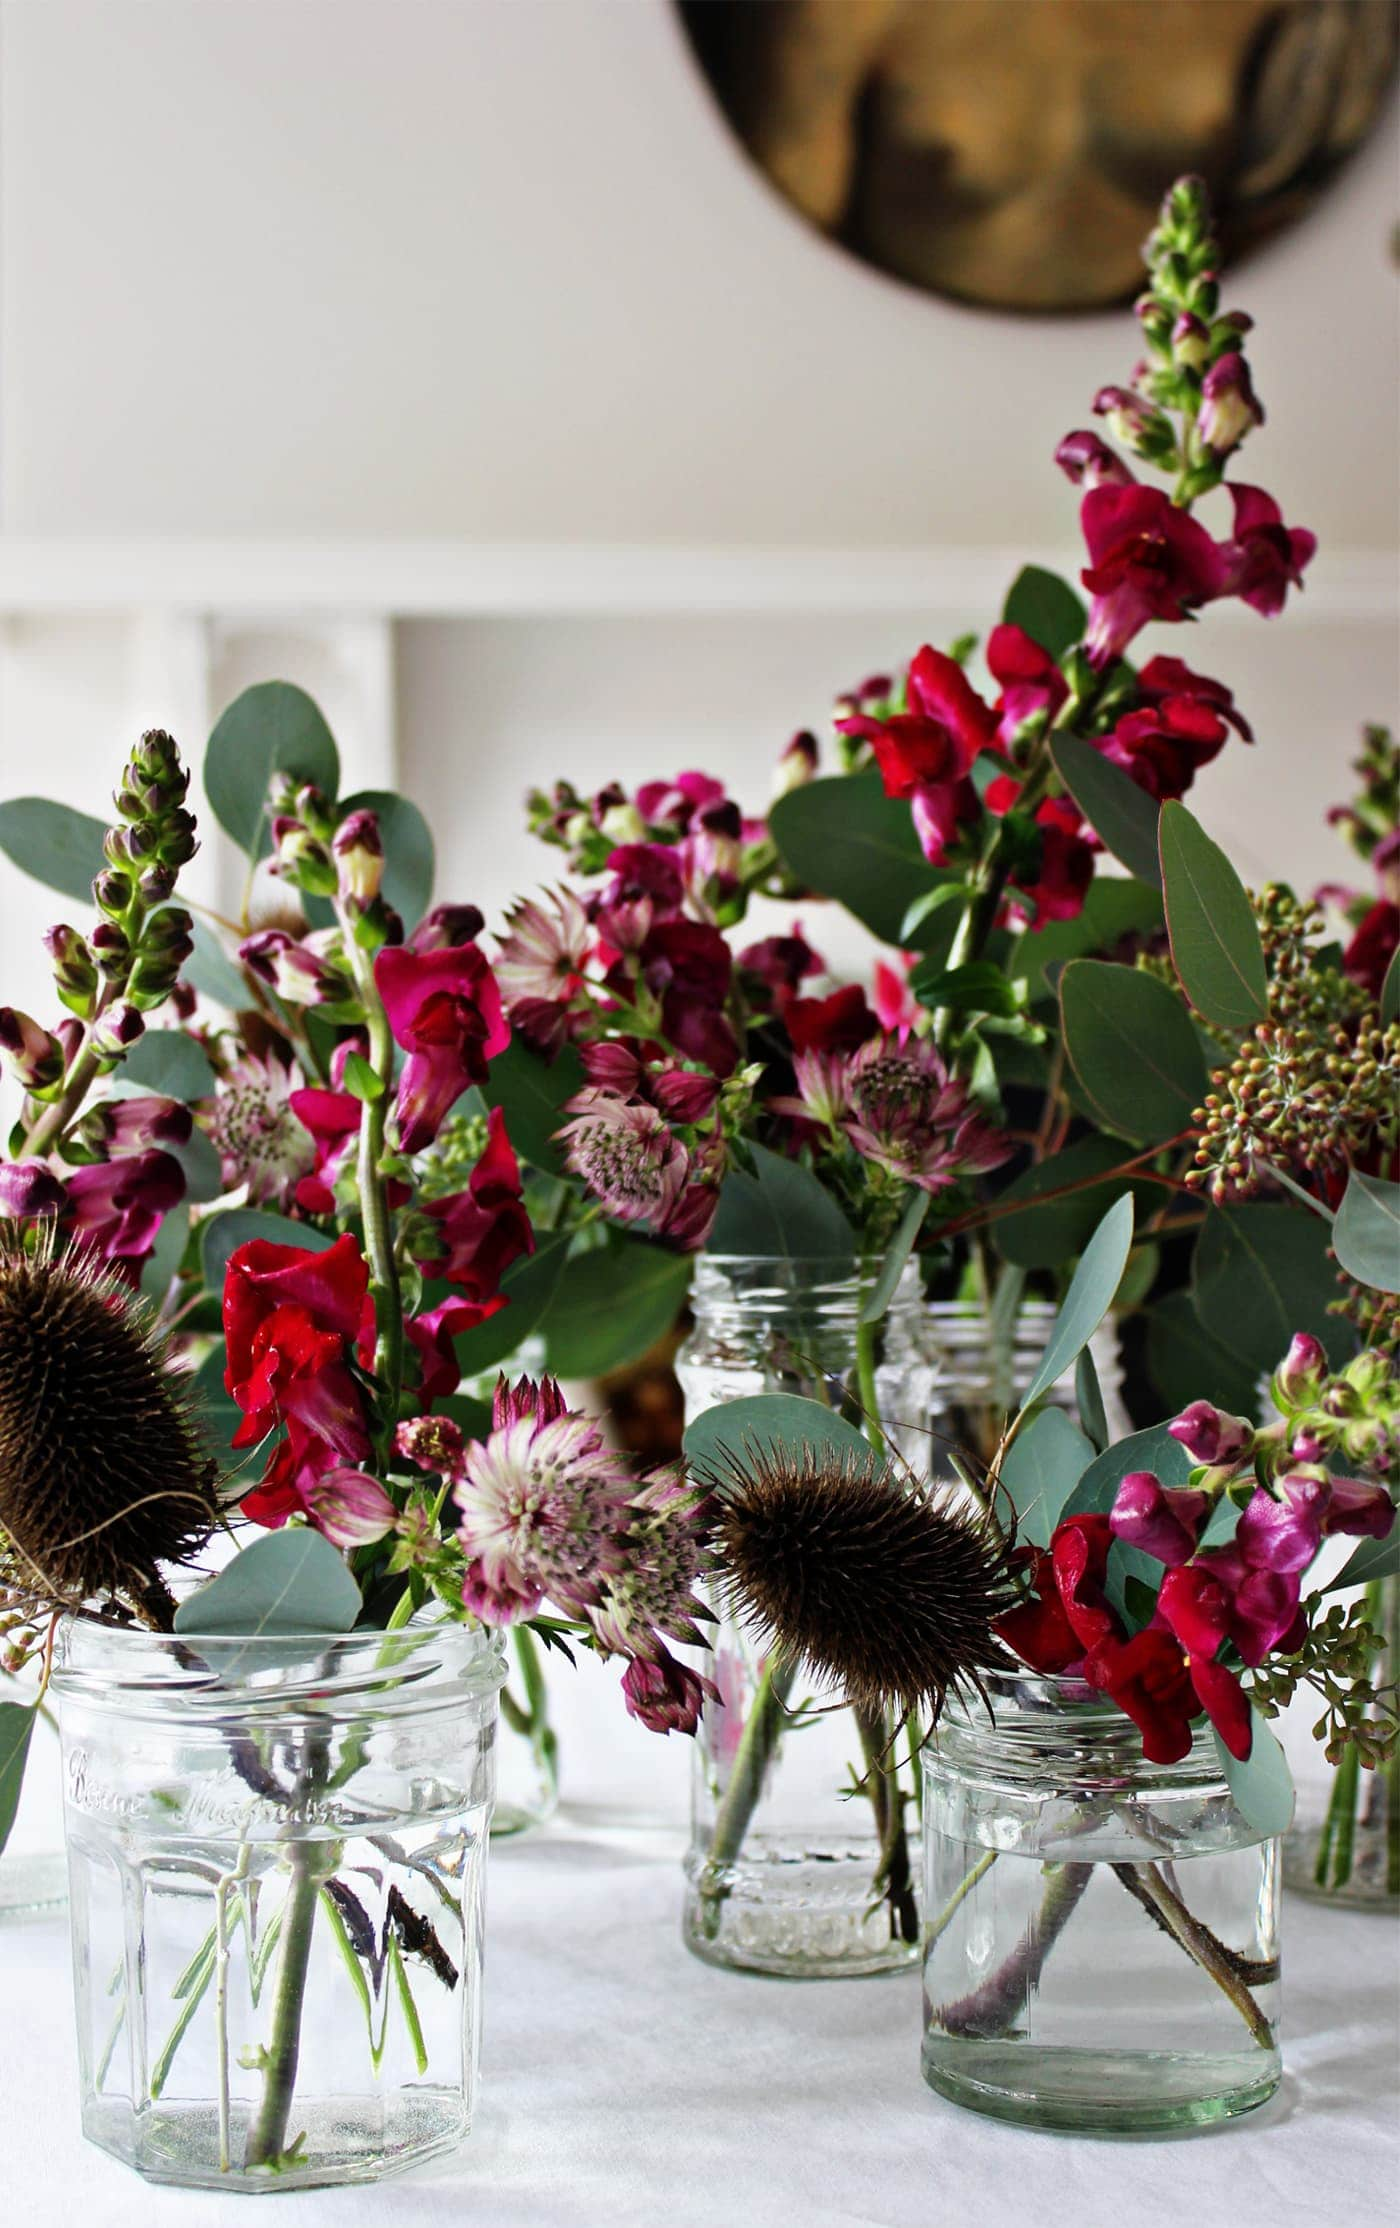 West elm 12 styled days of Christmas   A quiet style 2